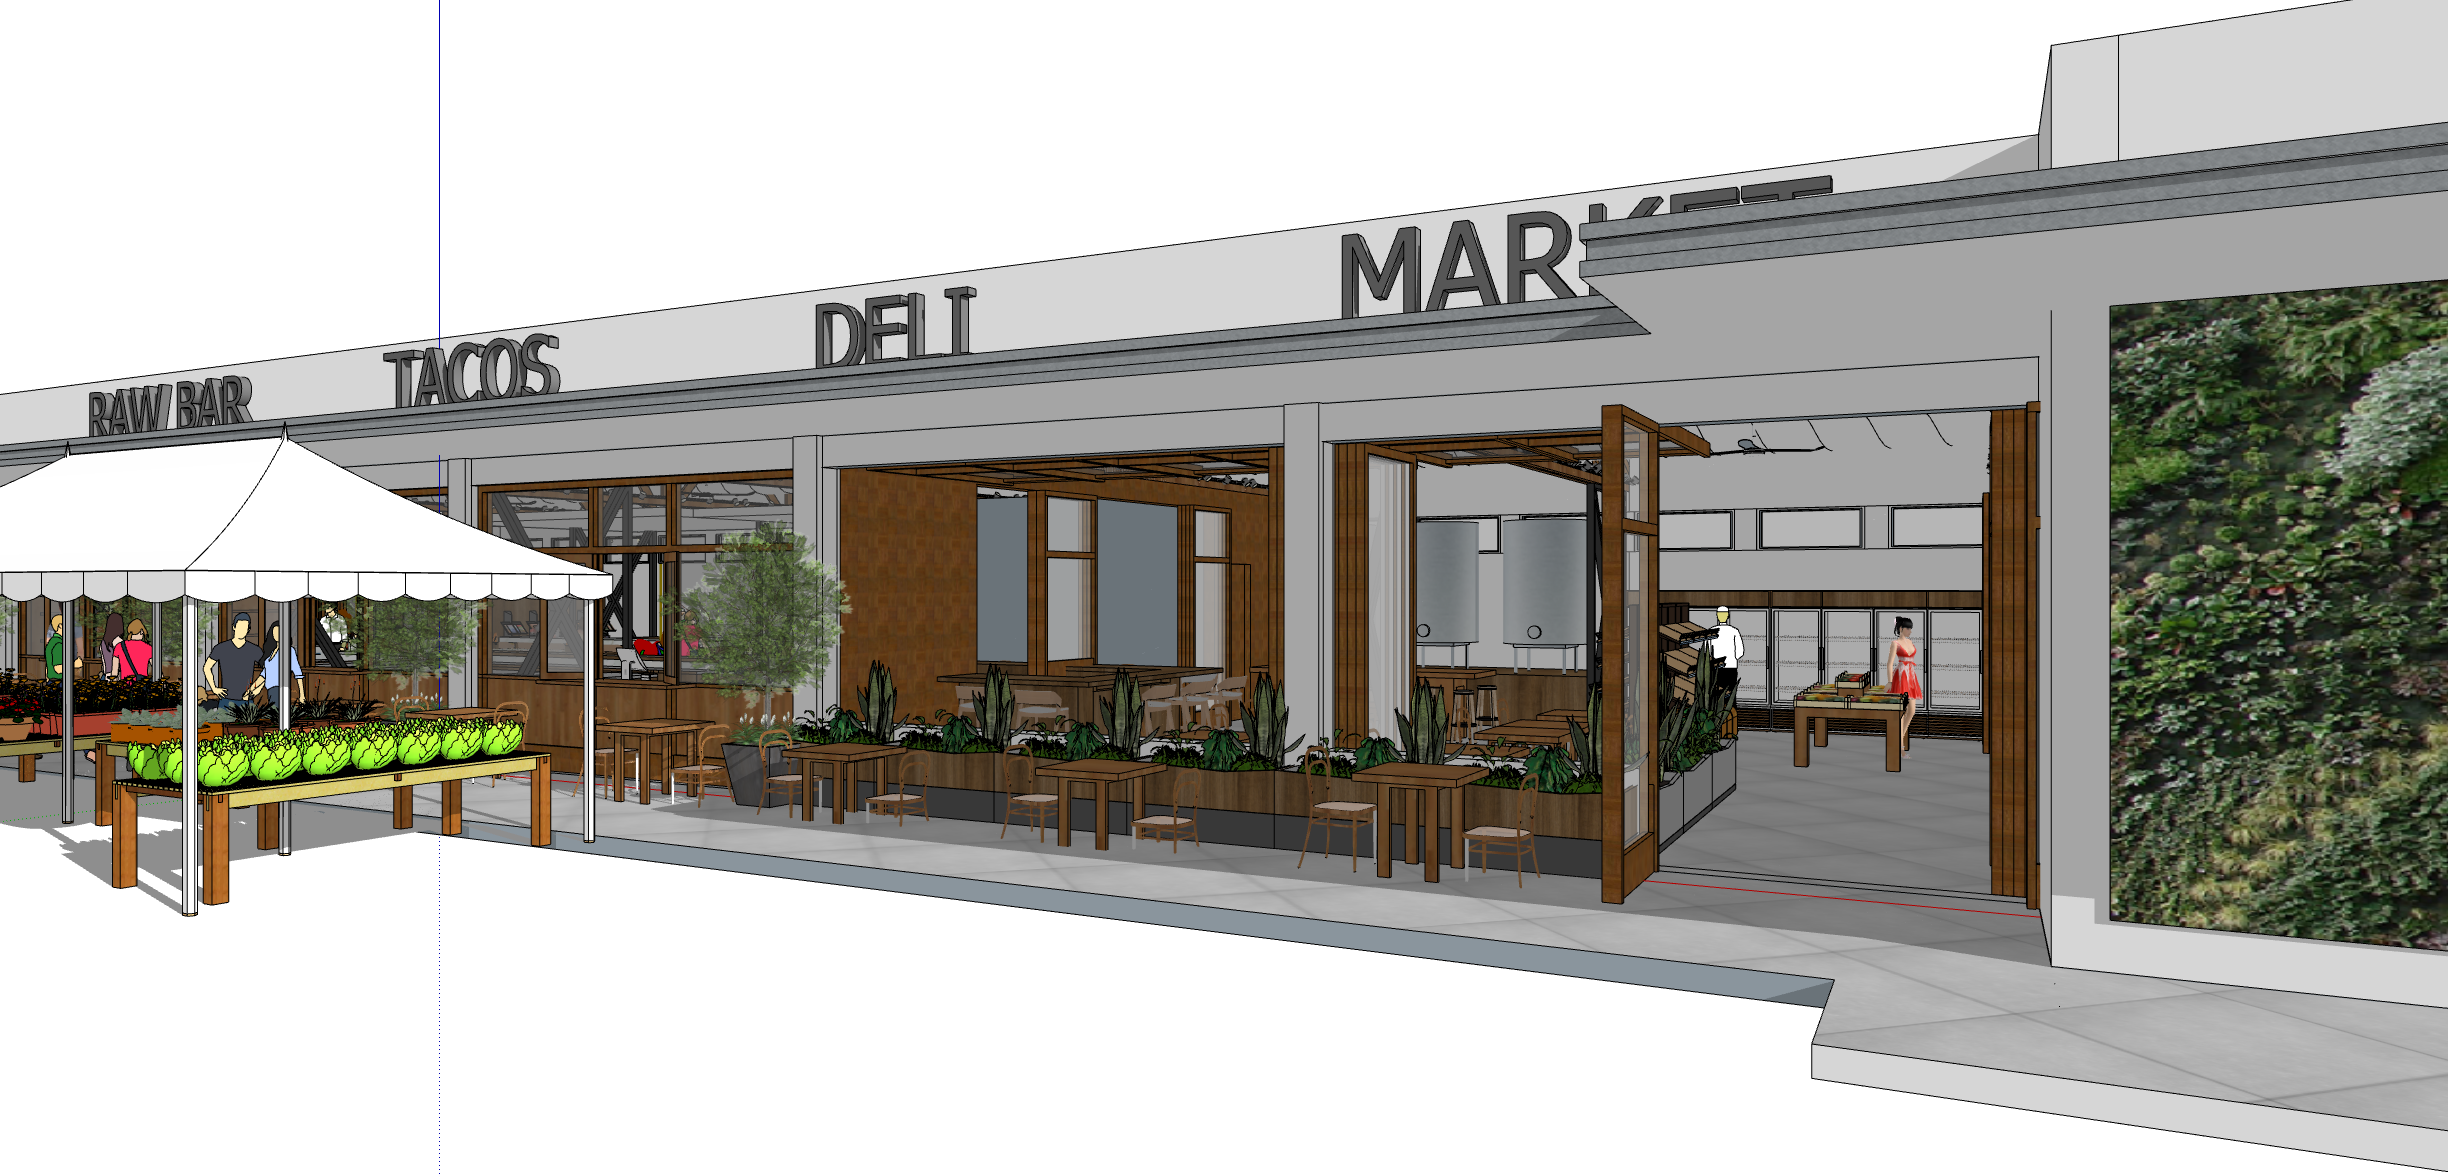 Conceptual exterior image of Phase 1 of Historic Food City Building.  This image was created by Kelly & Morgan Architects for exclusive use by Grub LLC. All Rights Reserved.